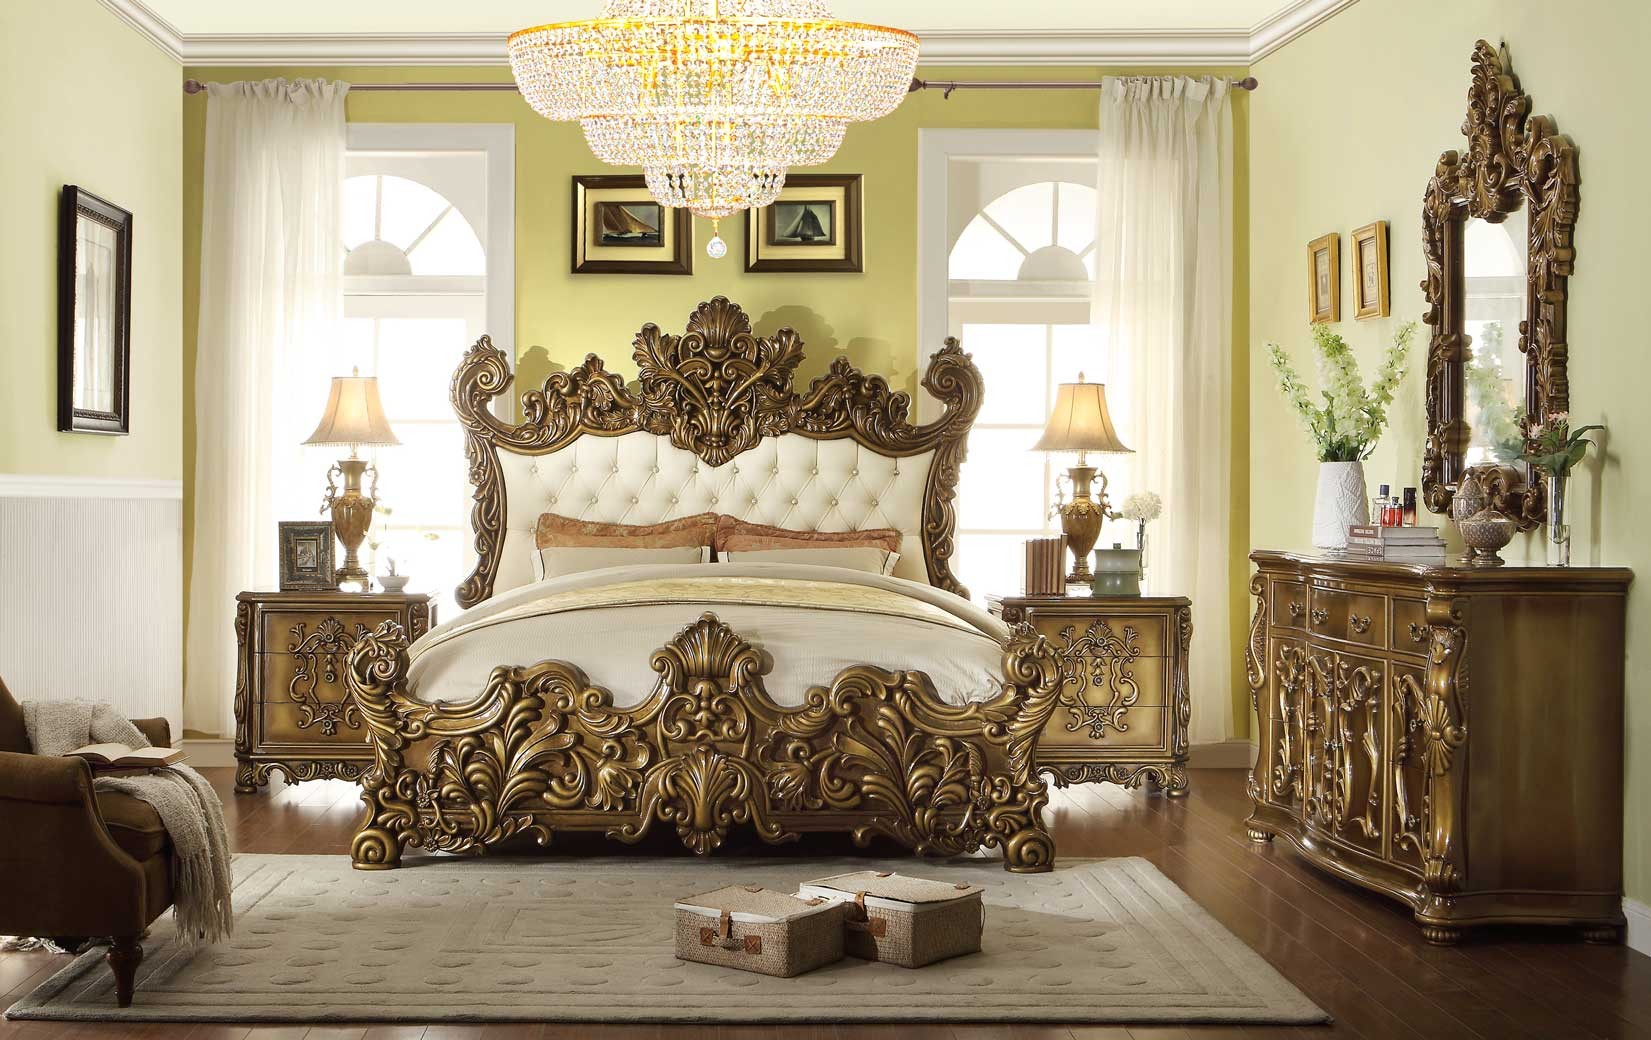 Enjoyable Hd 8008 Homey Design Bedroom Set Victorian European Classic Design Interior Design Ideas Ghosoteloinfo